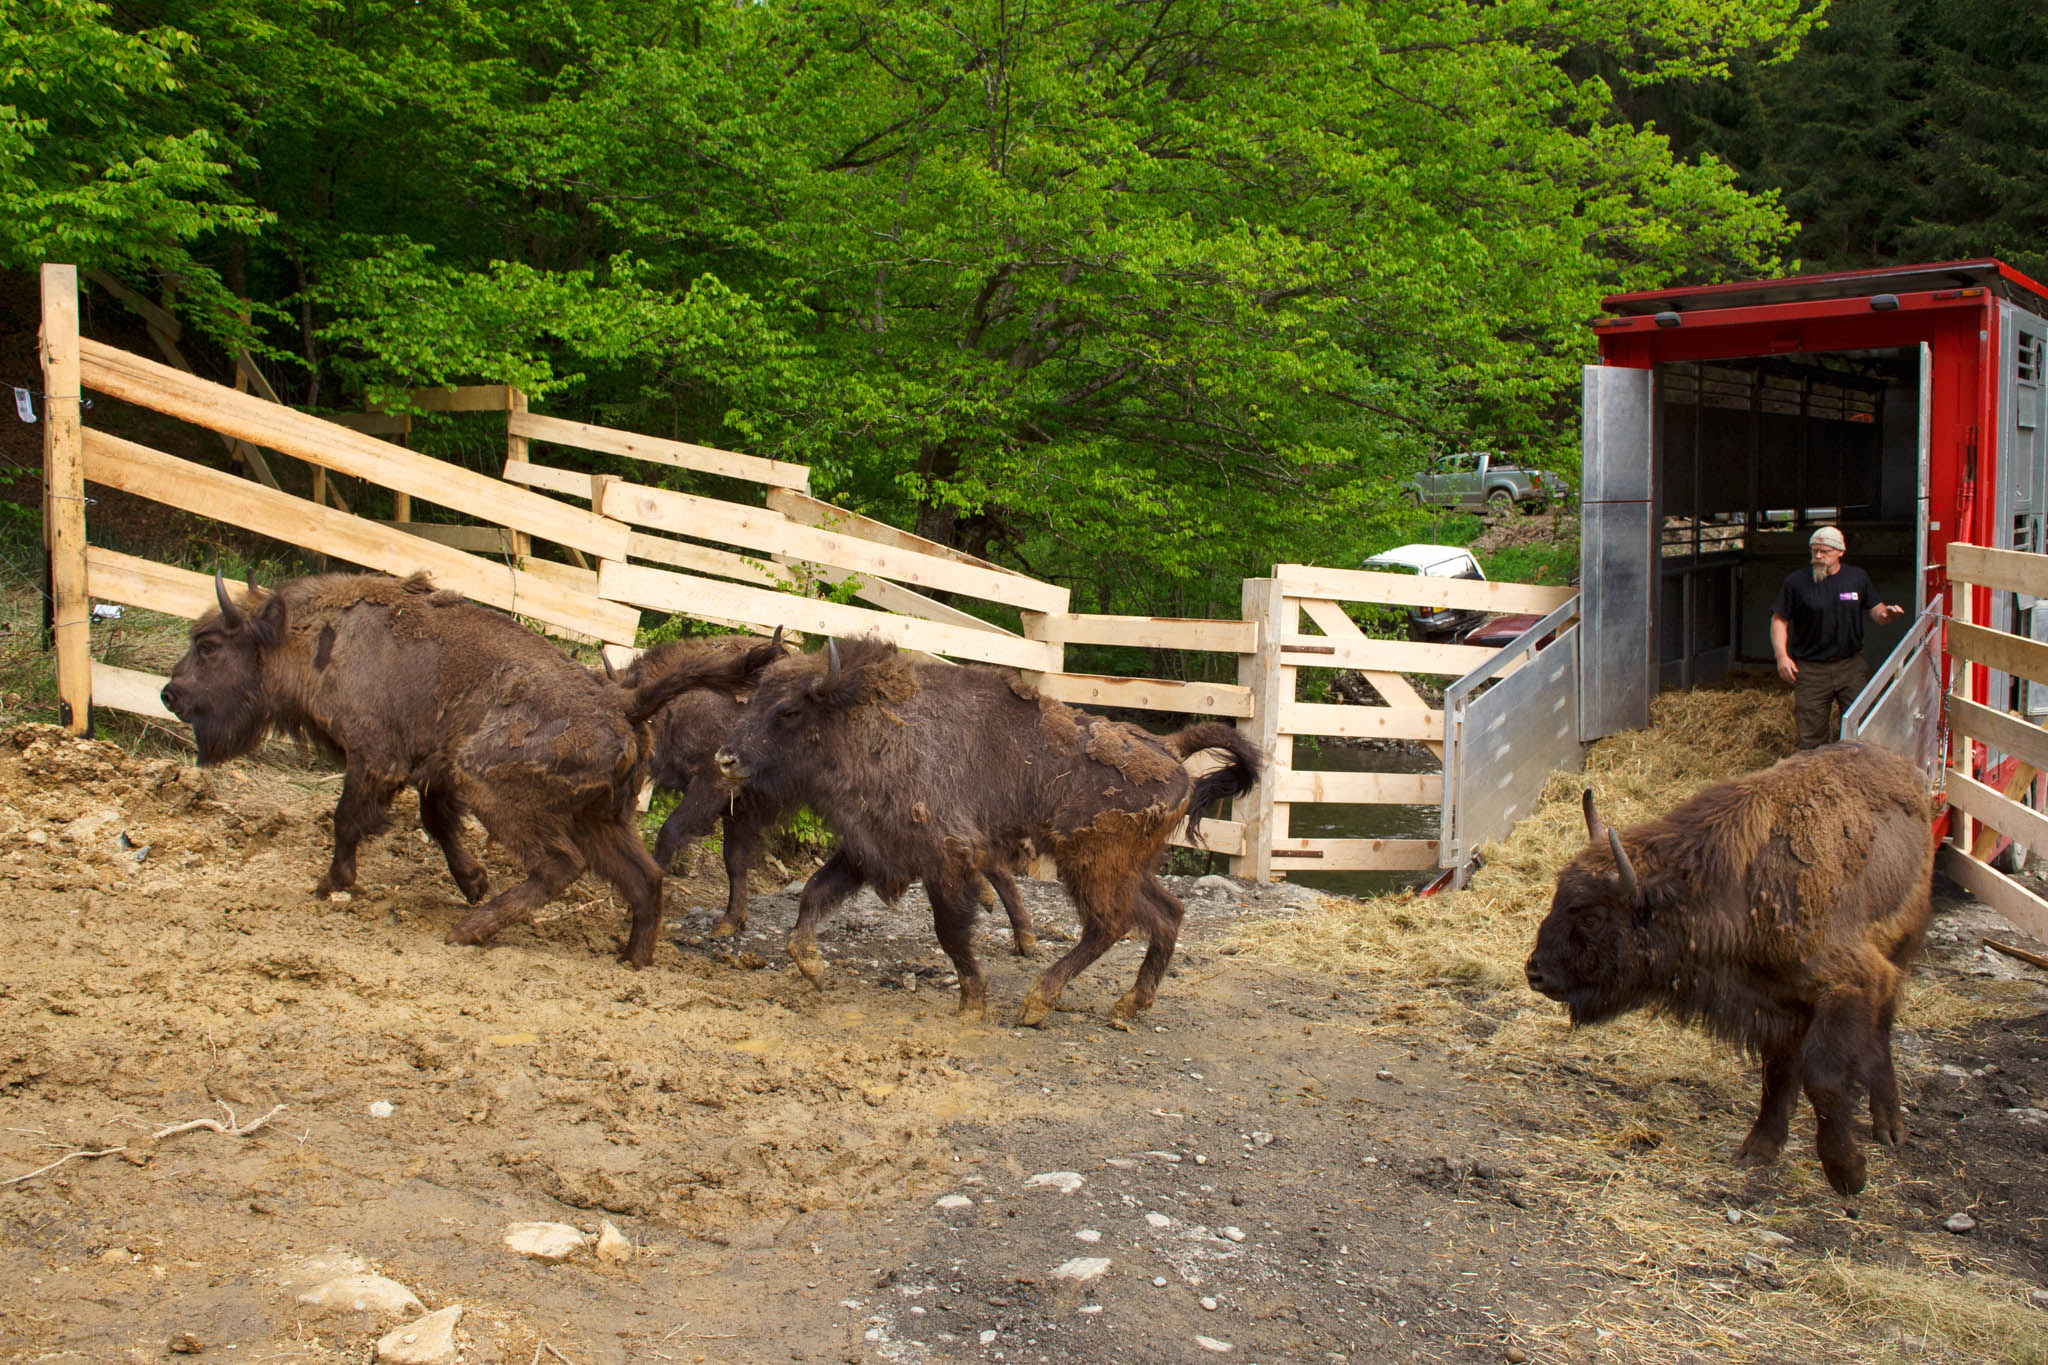 Release of European bison in the Southern Carpathians rewilding area